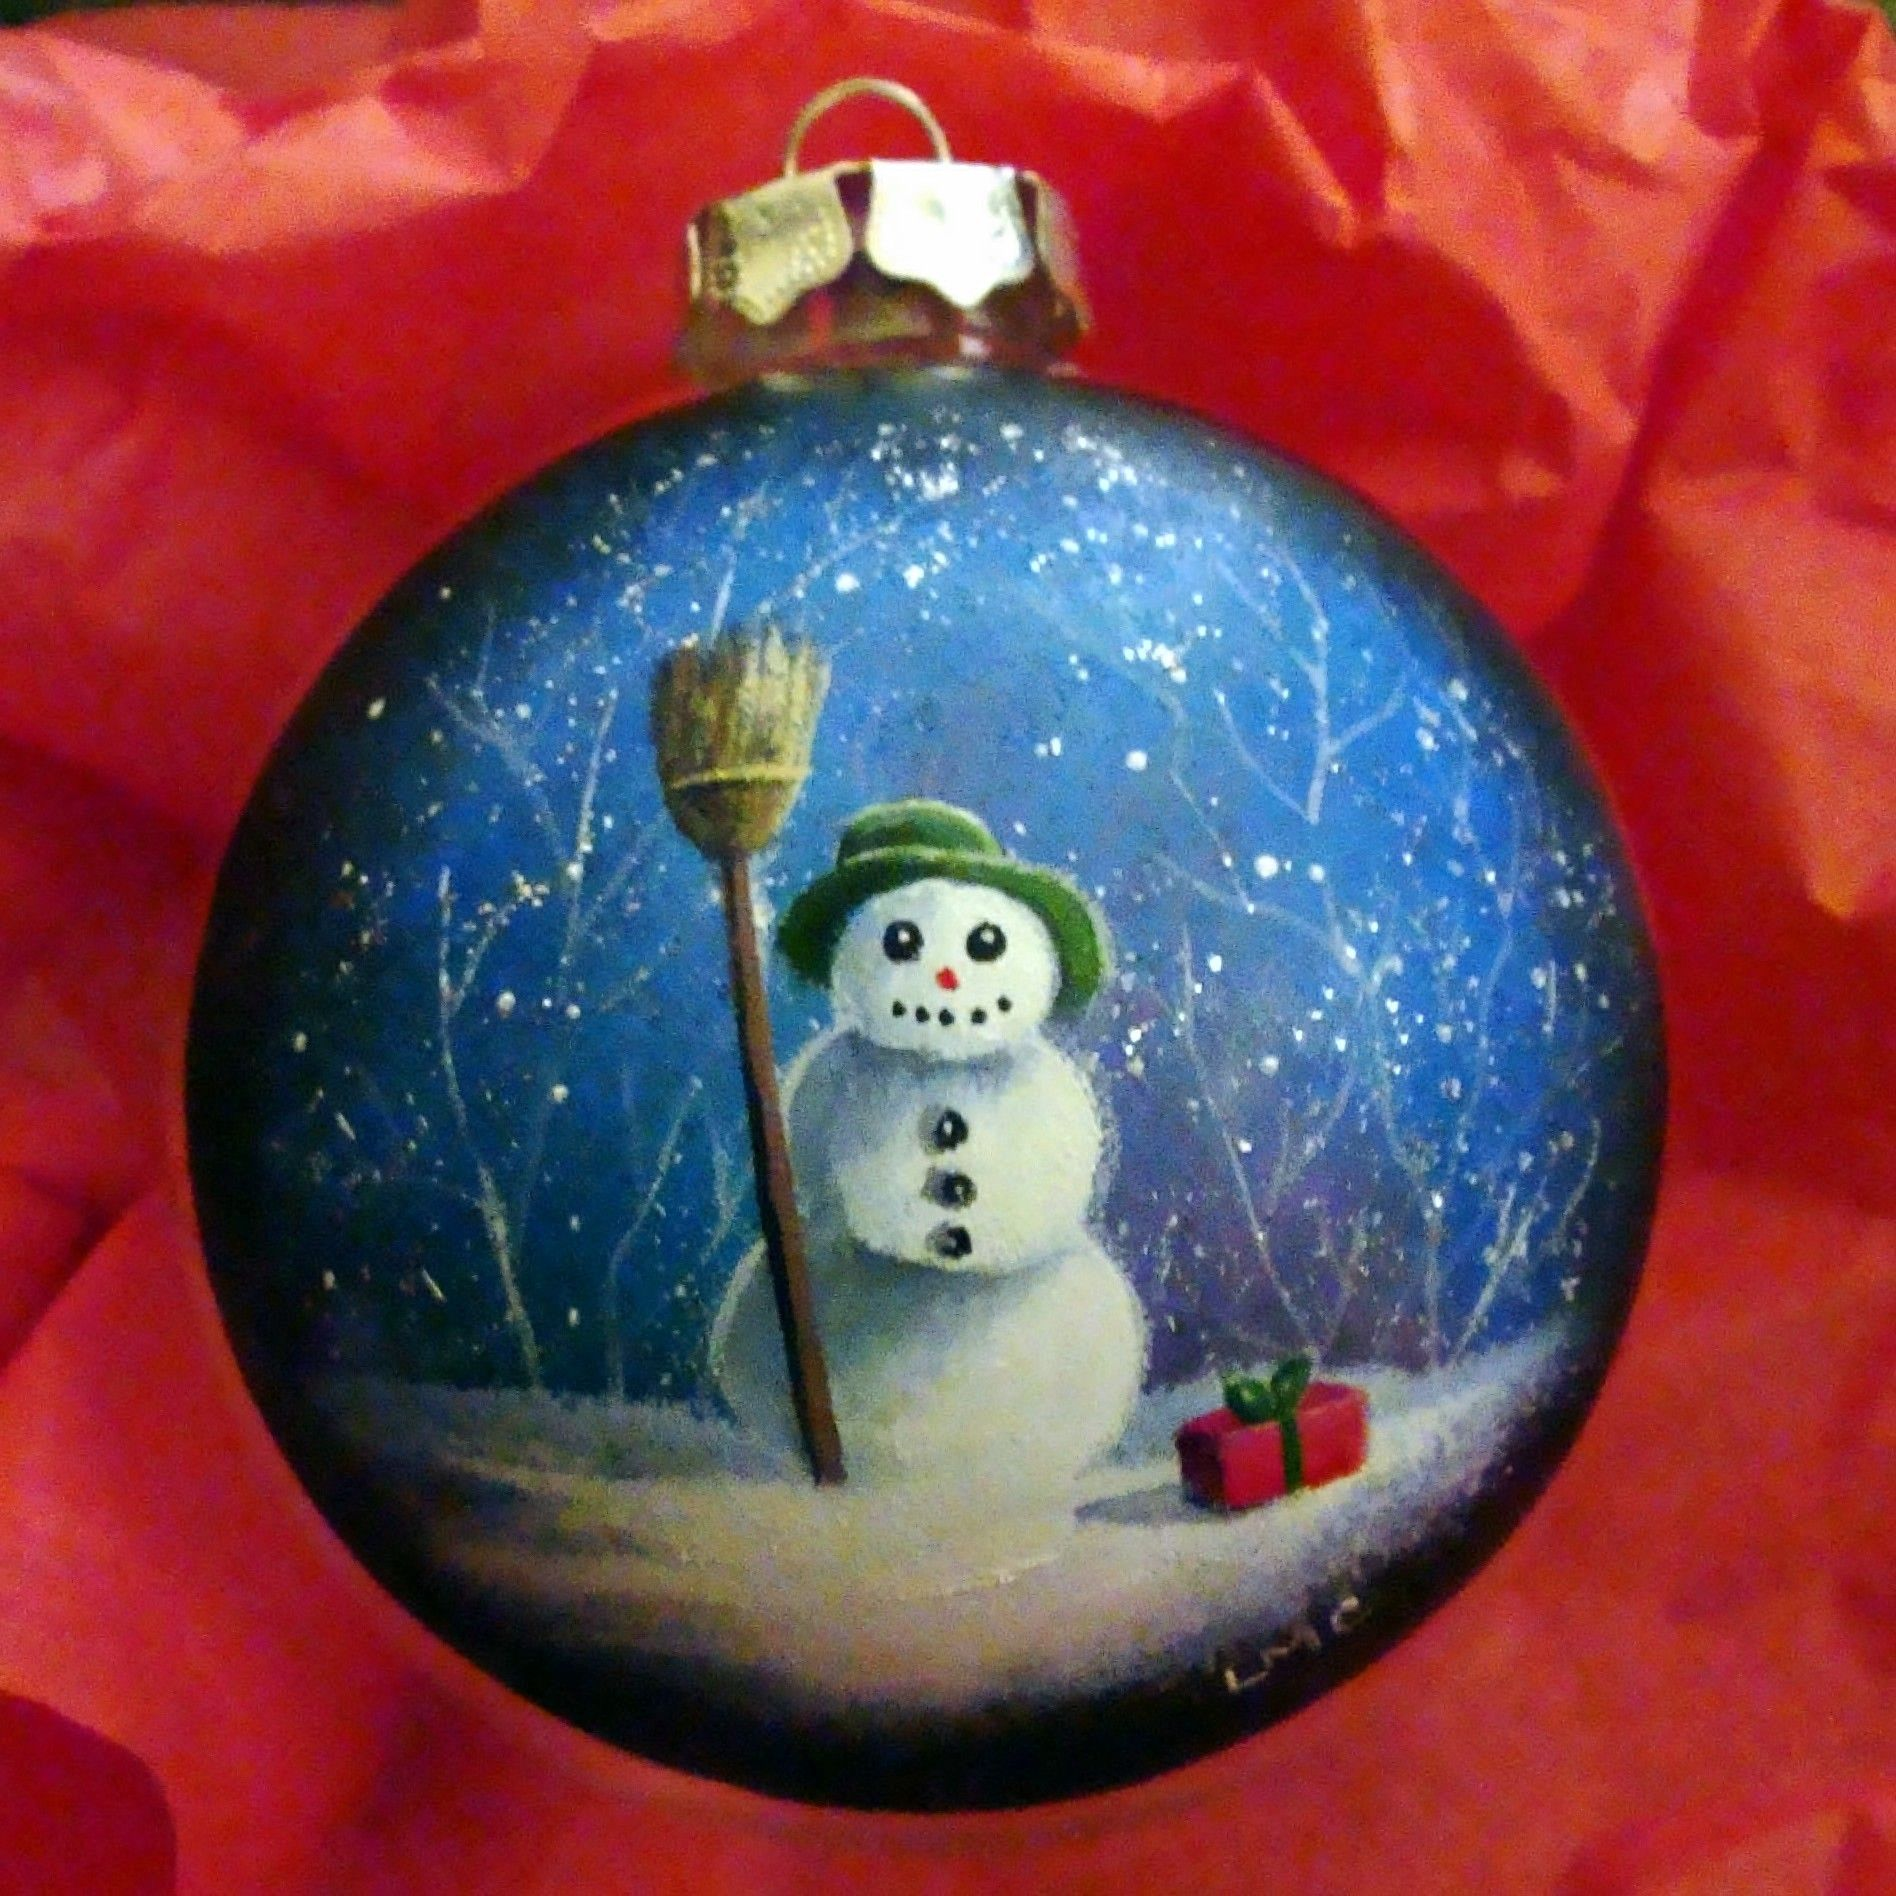 Christmas Ornaments Snowman Blow Job